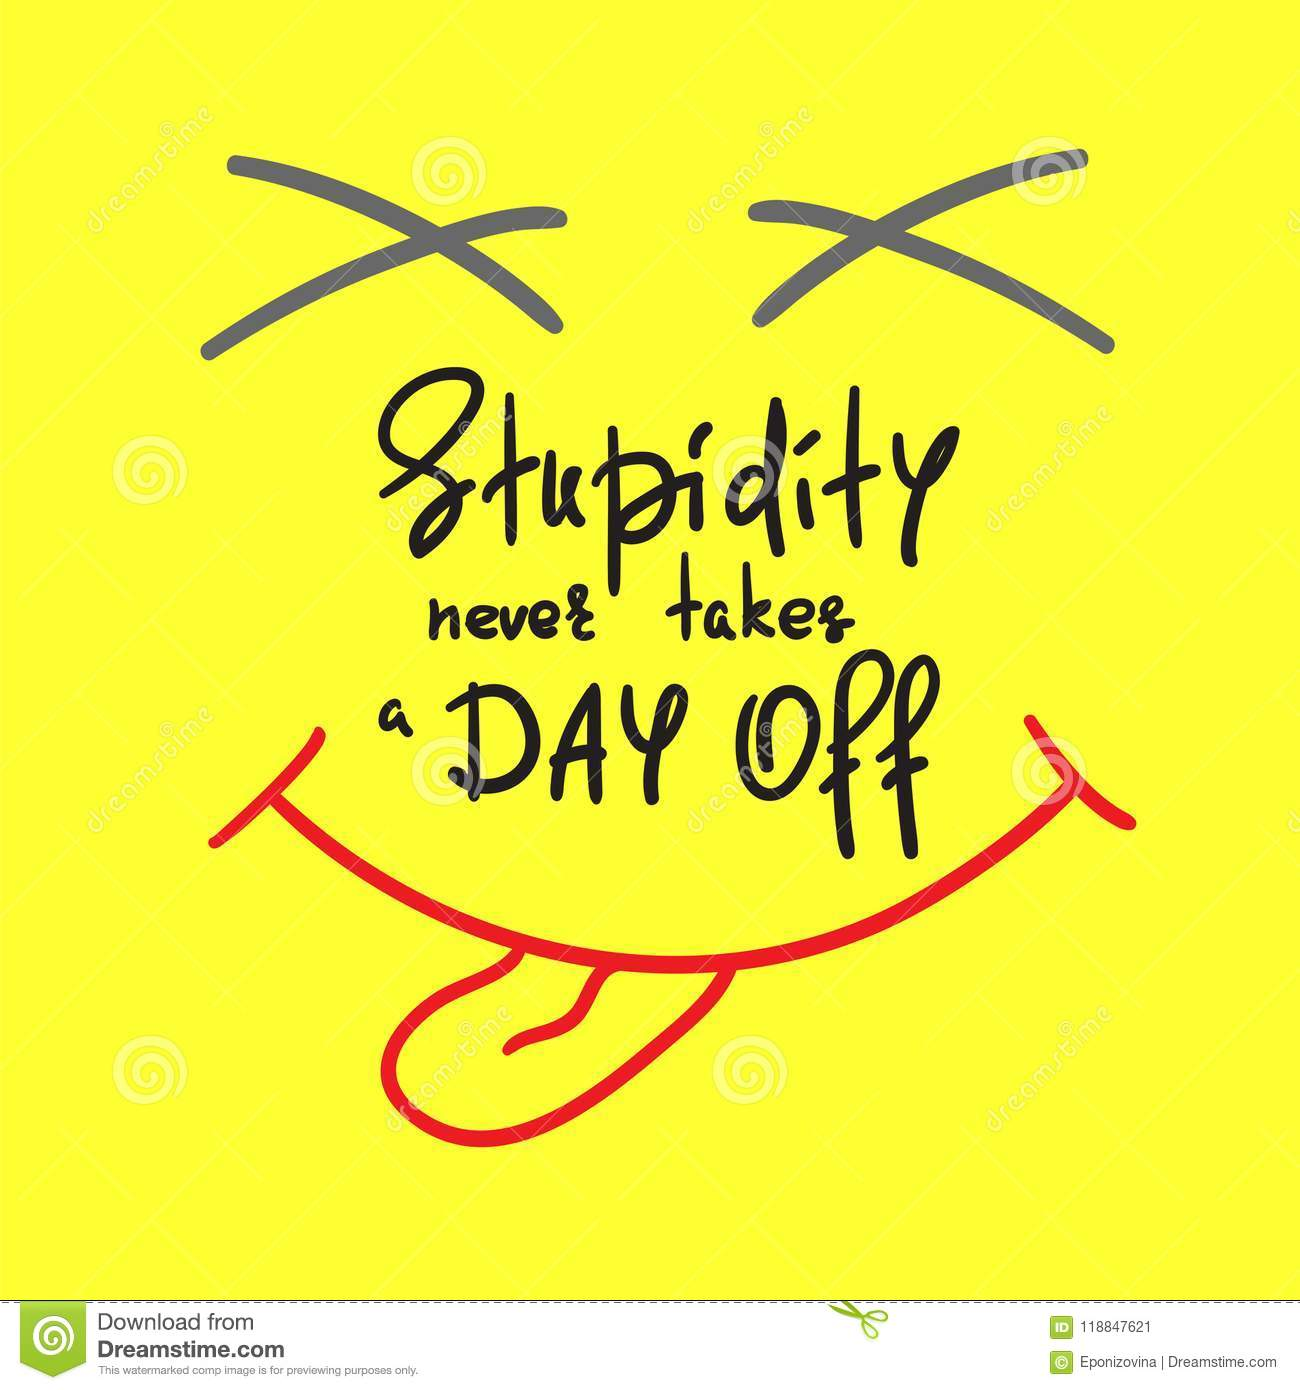 Funny Inspirational Quote Of The Day: Stupidity Never Takes A Day Off